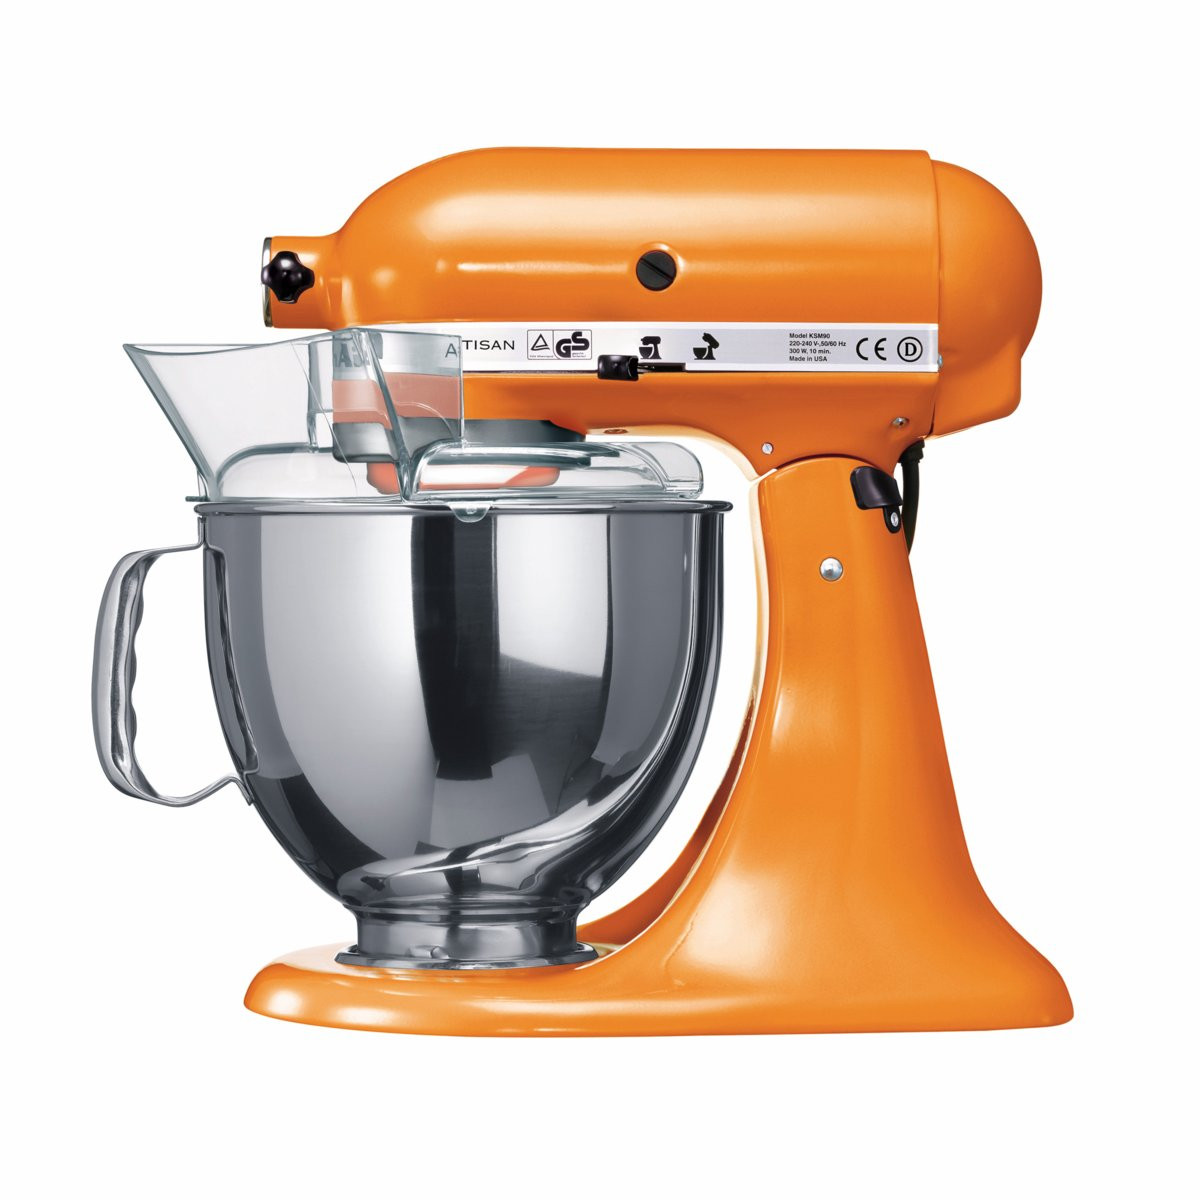 robot patissier kitchenaid artisan 5ksm150ps etg orange bestofrobots. Black Bedroom Furniture Sets. Home Design Ideas